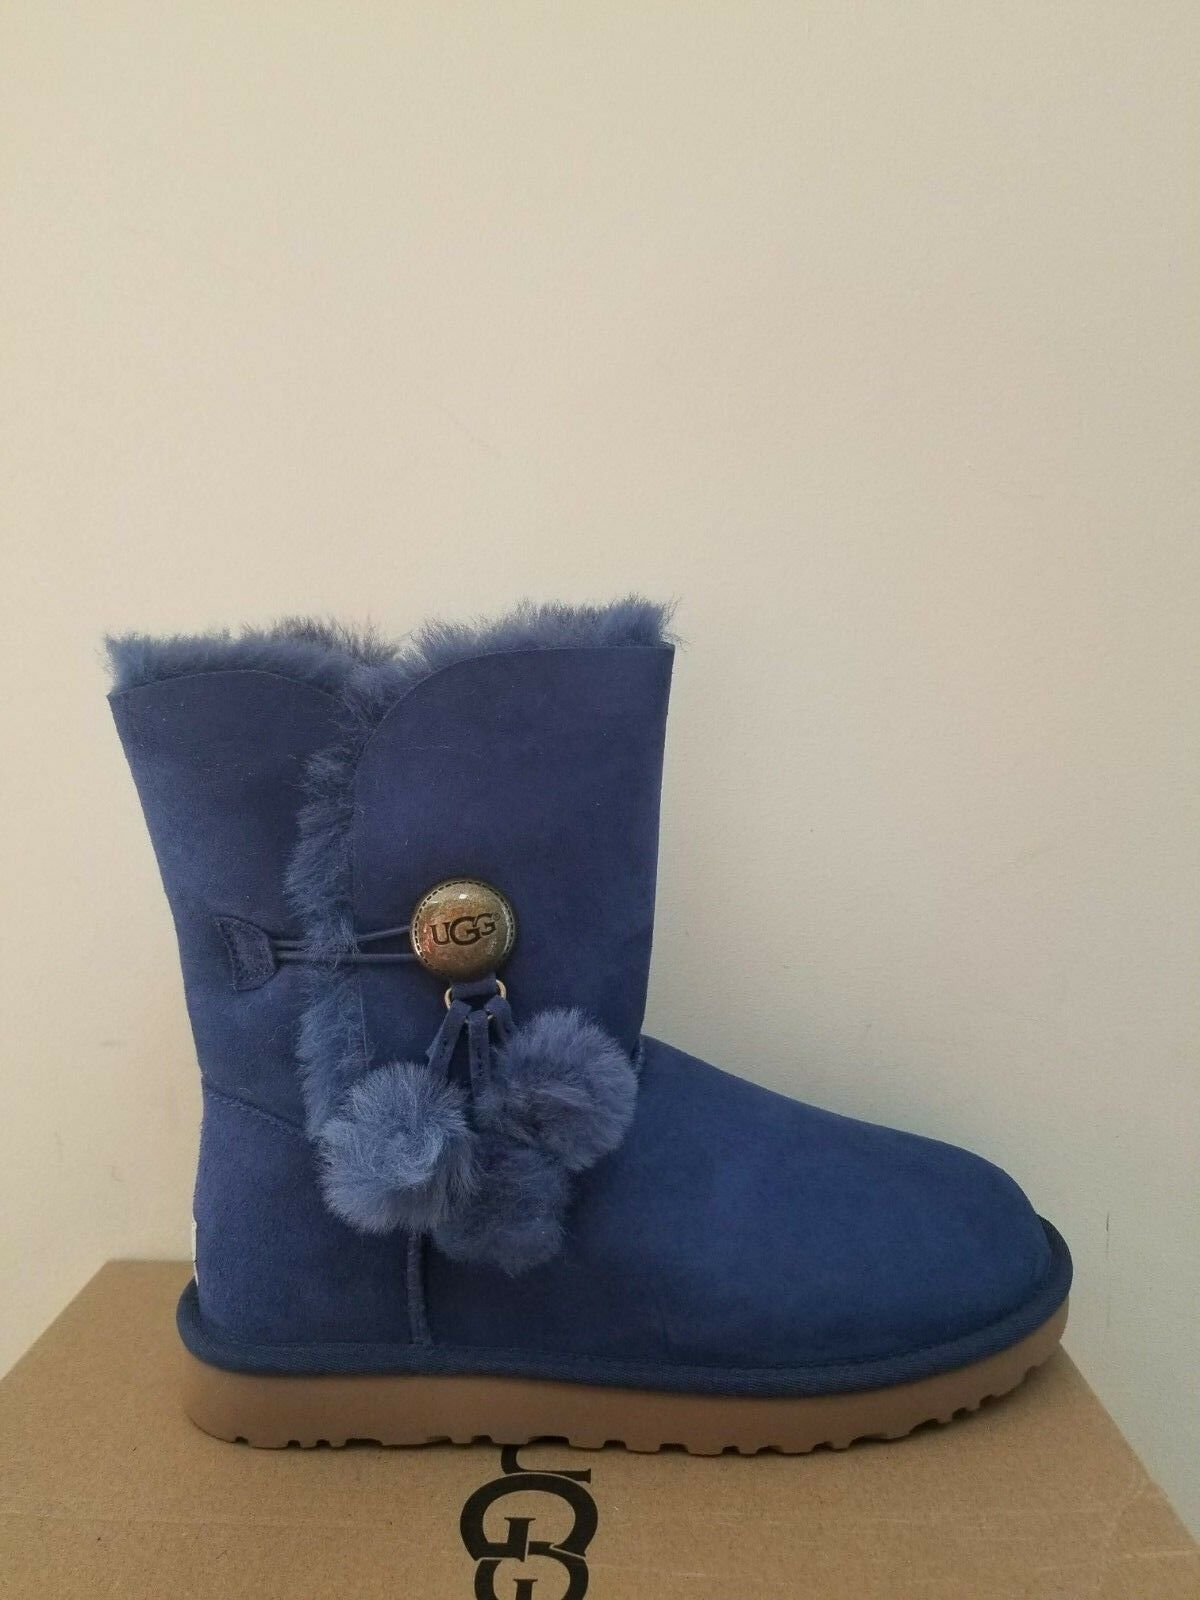 Ugg Australia Womens Bailey Button Puff Boots Größe 7 NIB